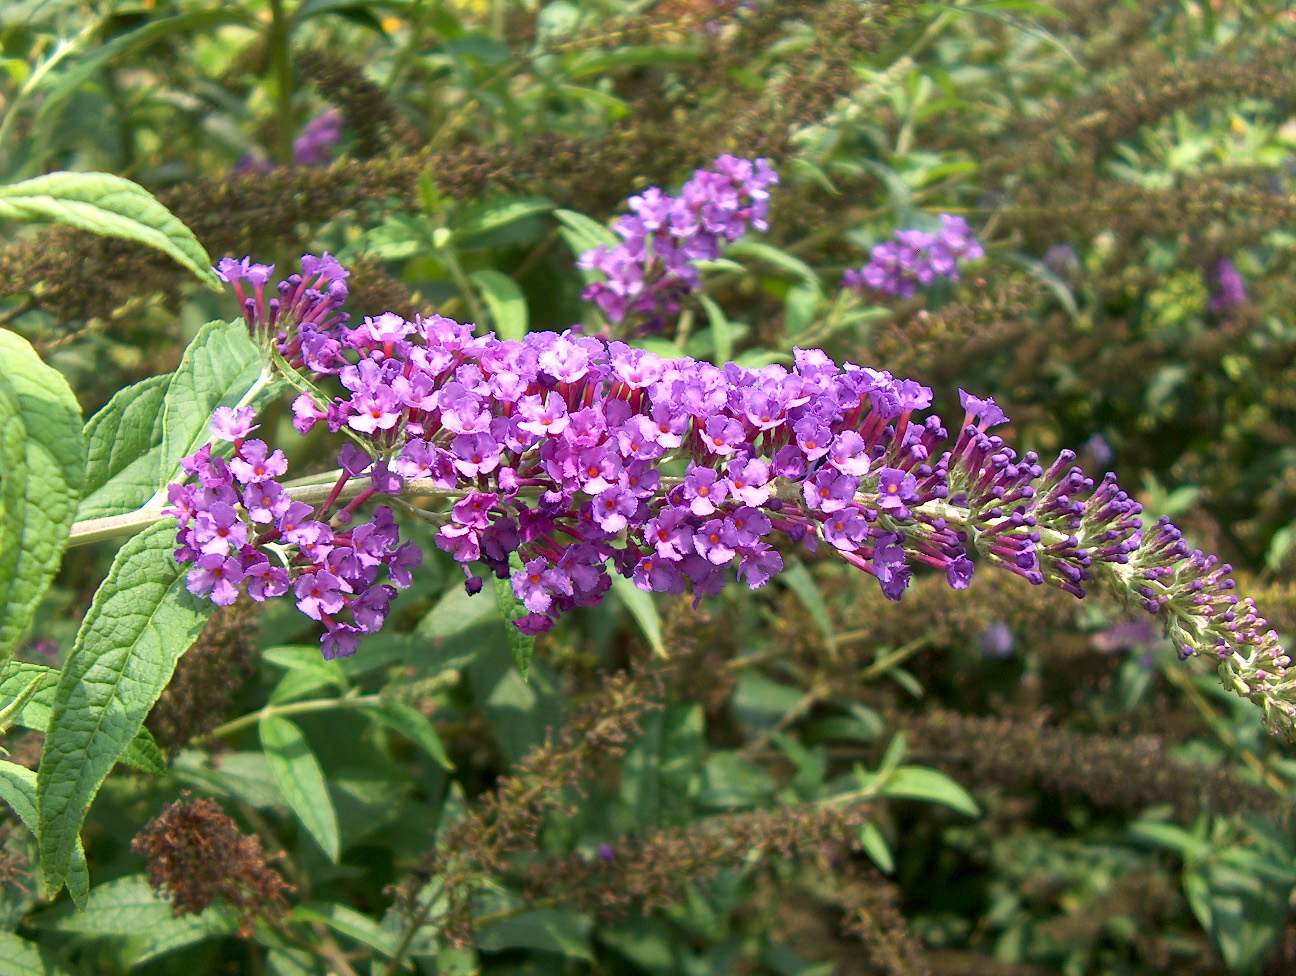 Online plant guide buddleia davidii potties purple potties buddleia davidii potties purple buddleia davidii potties mightylinksfo